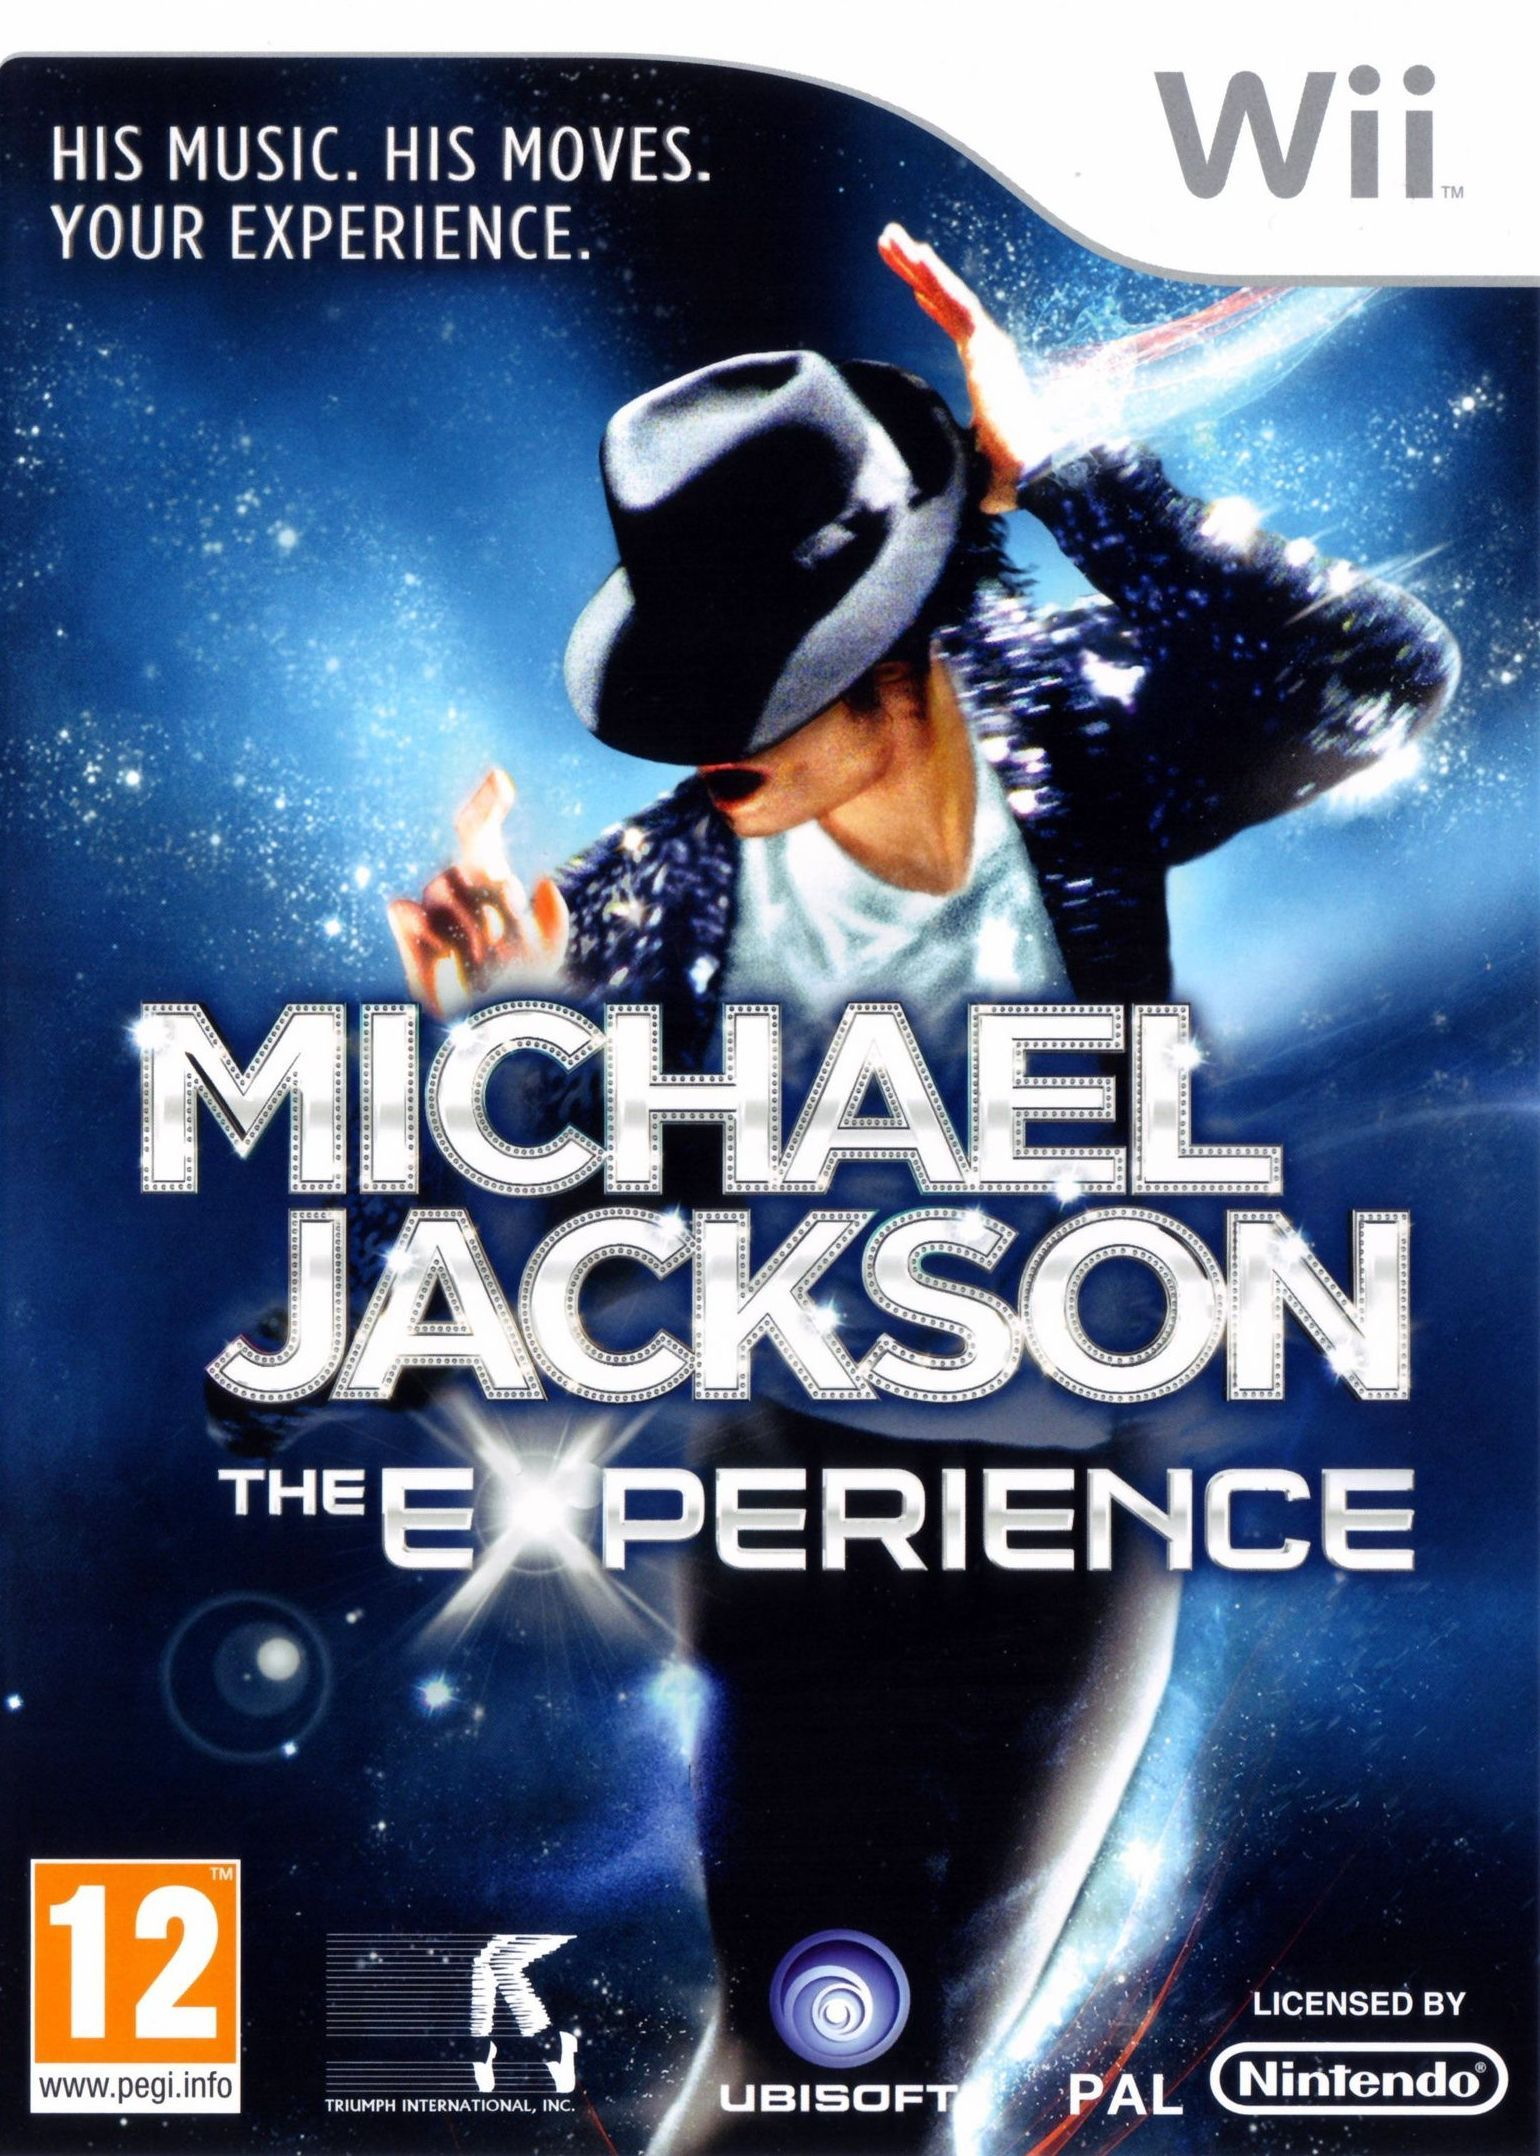 Michael_Jackson_The_Experience-Frontal-WII.jpg